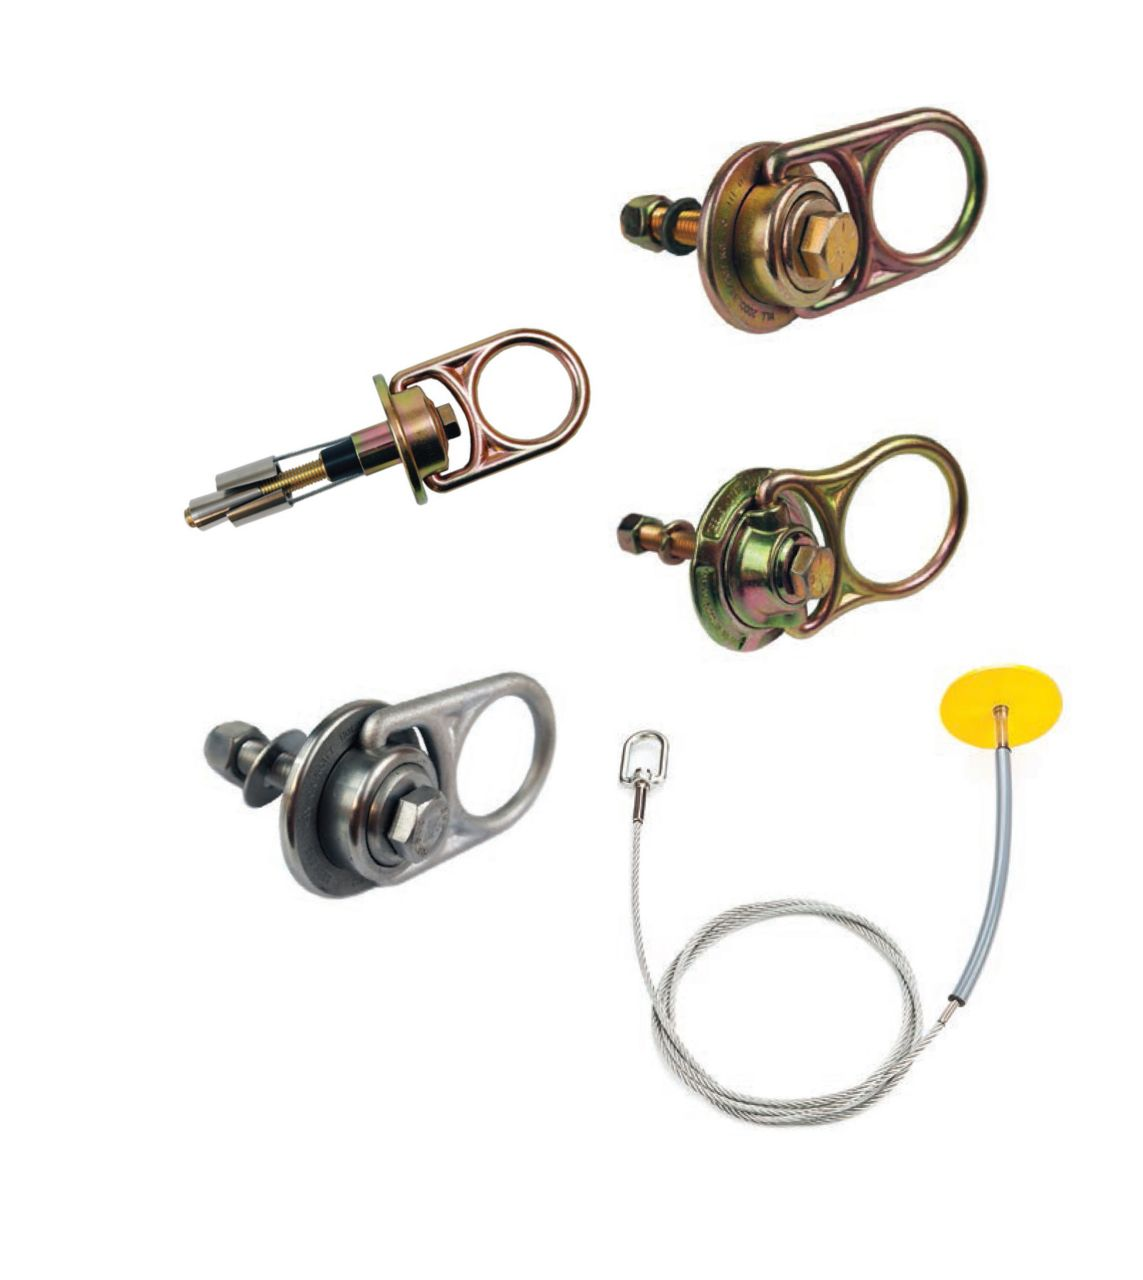 Miller Swivel Anchors